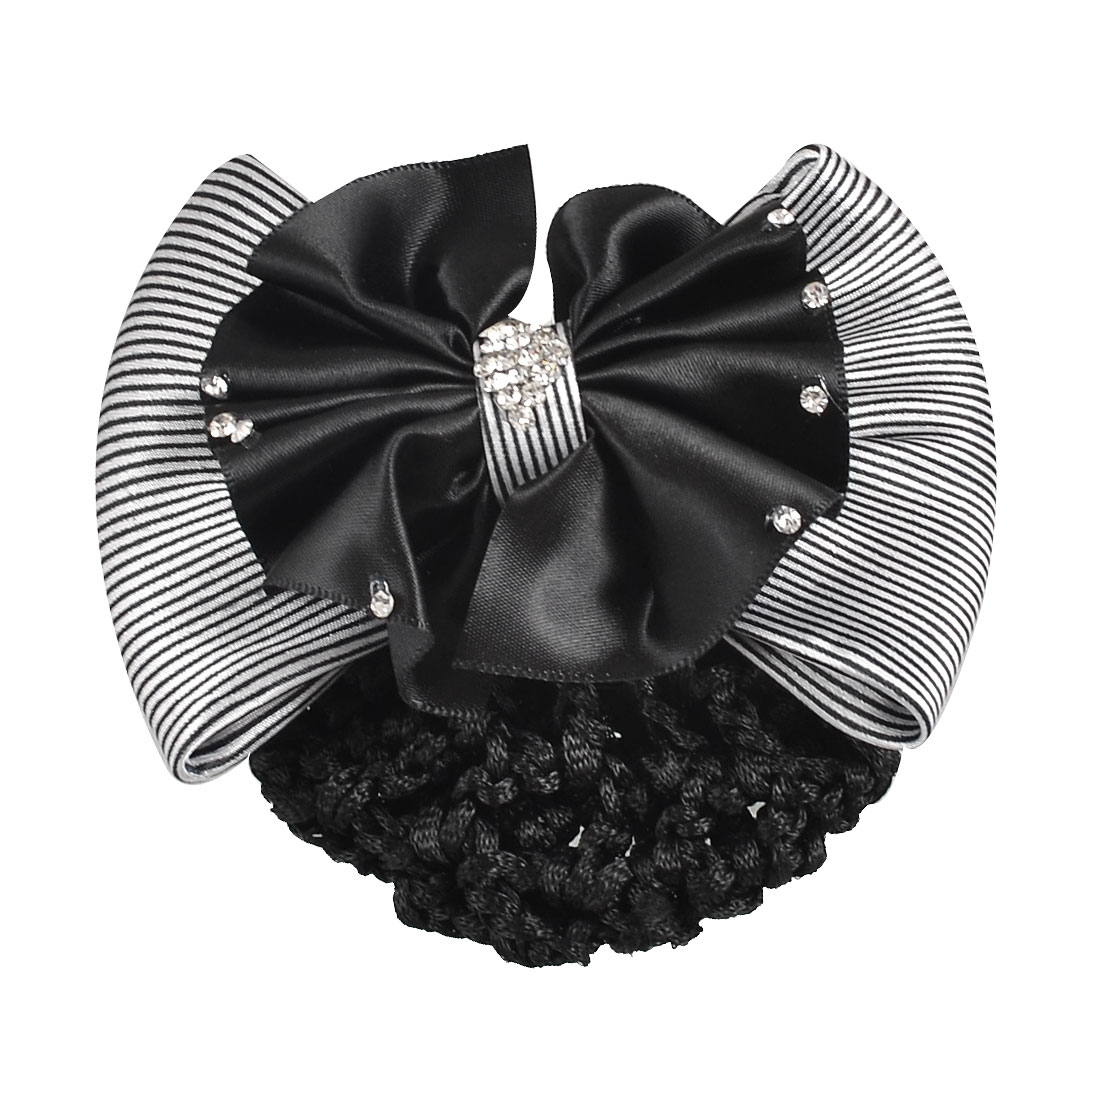 Lady Black White Rhinestone Striped 2 Tiers Bowtie Barrette Hair Clip Hairnet